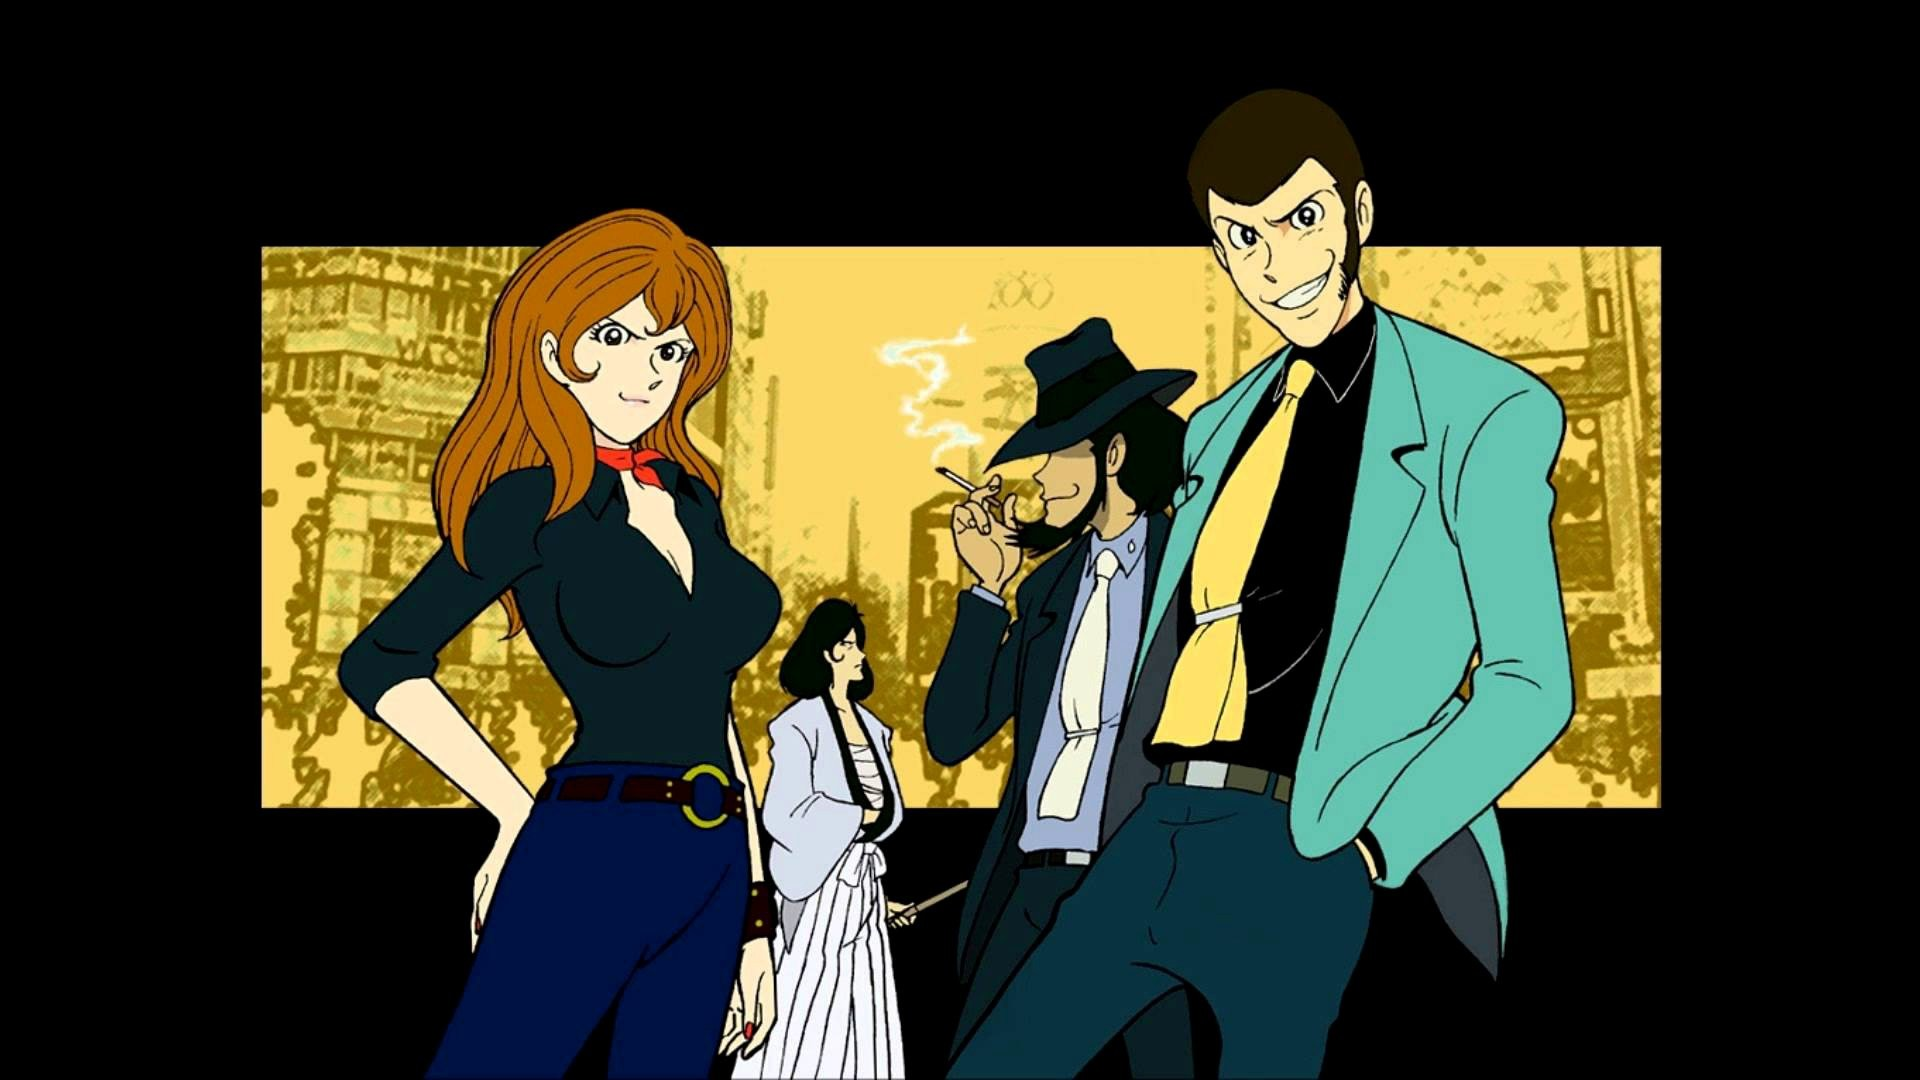 Lupin The Third Wallpaper Wallpapertag